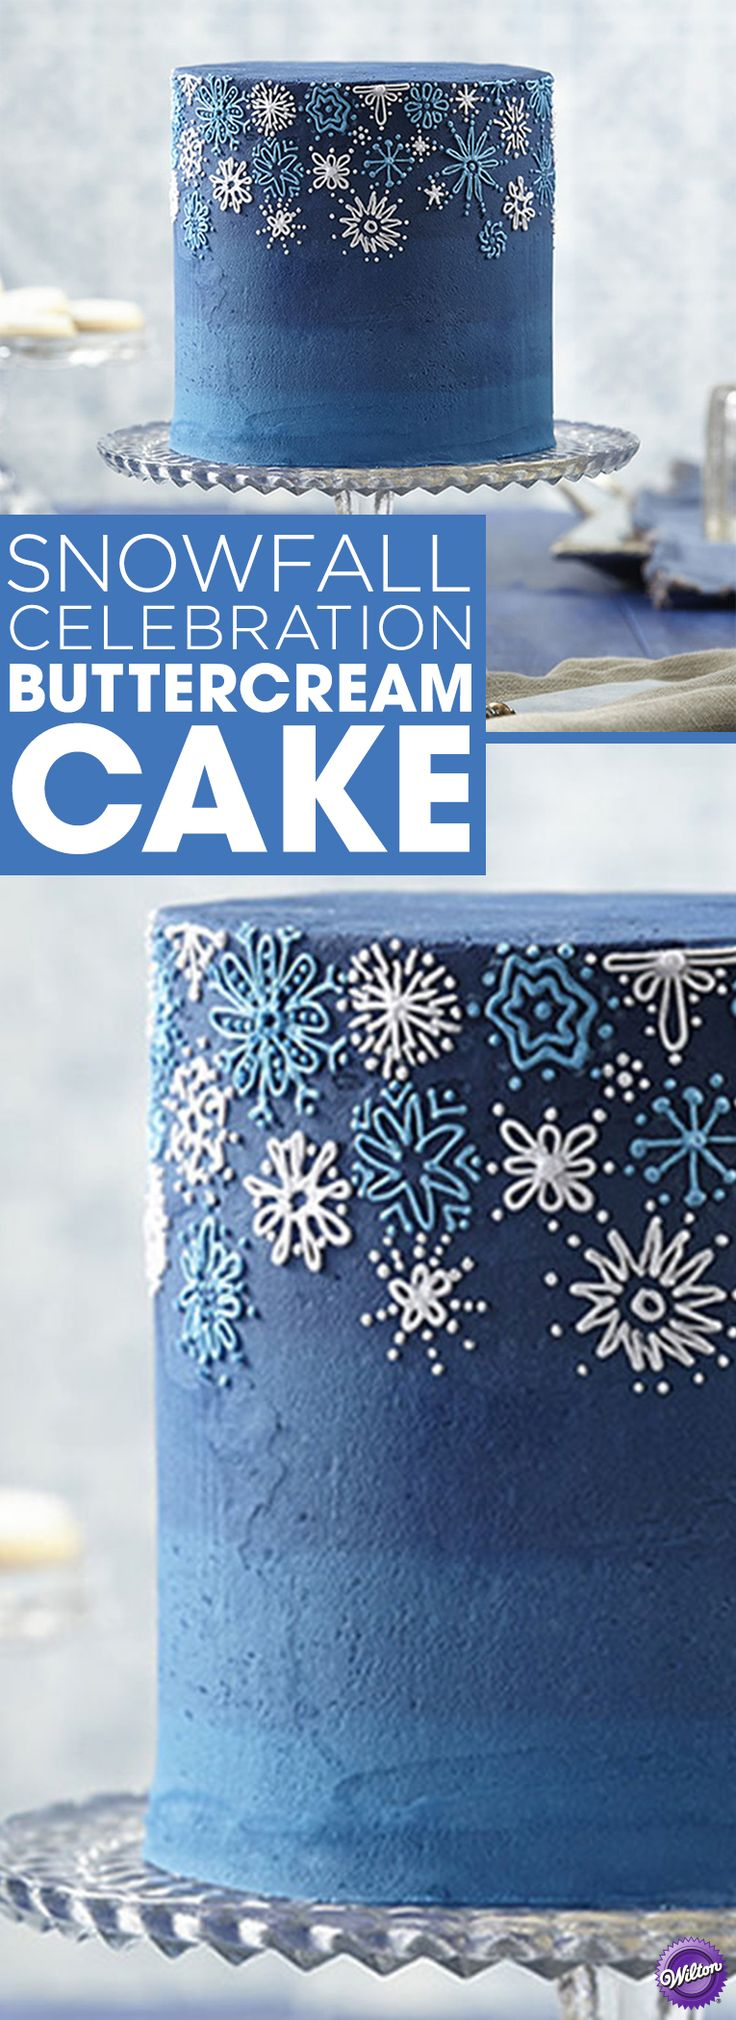 Wilton Cake Decorating Basics Dvd Free Download : 17 Best ideas about Wilton Cake Decorating on Pinterest ...